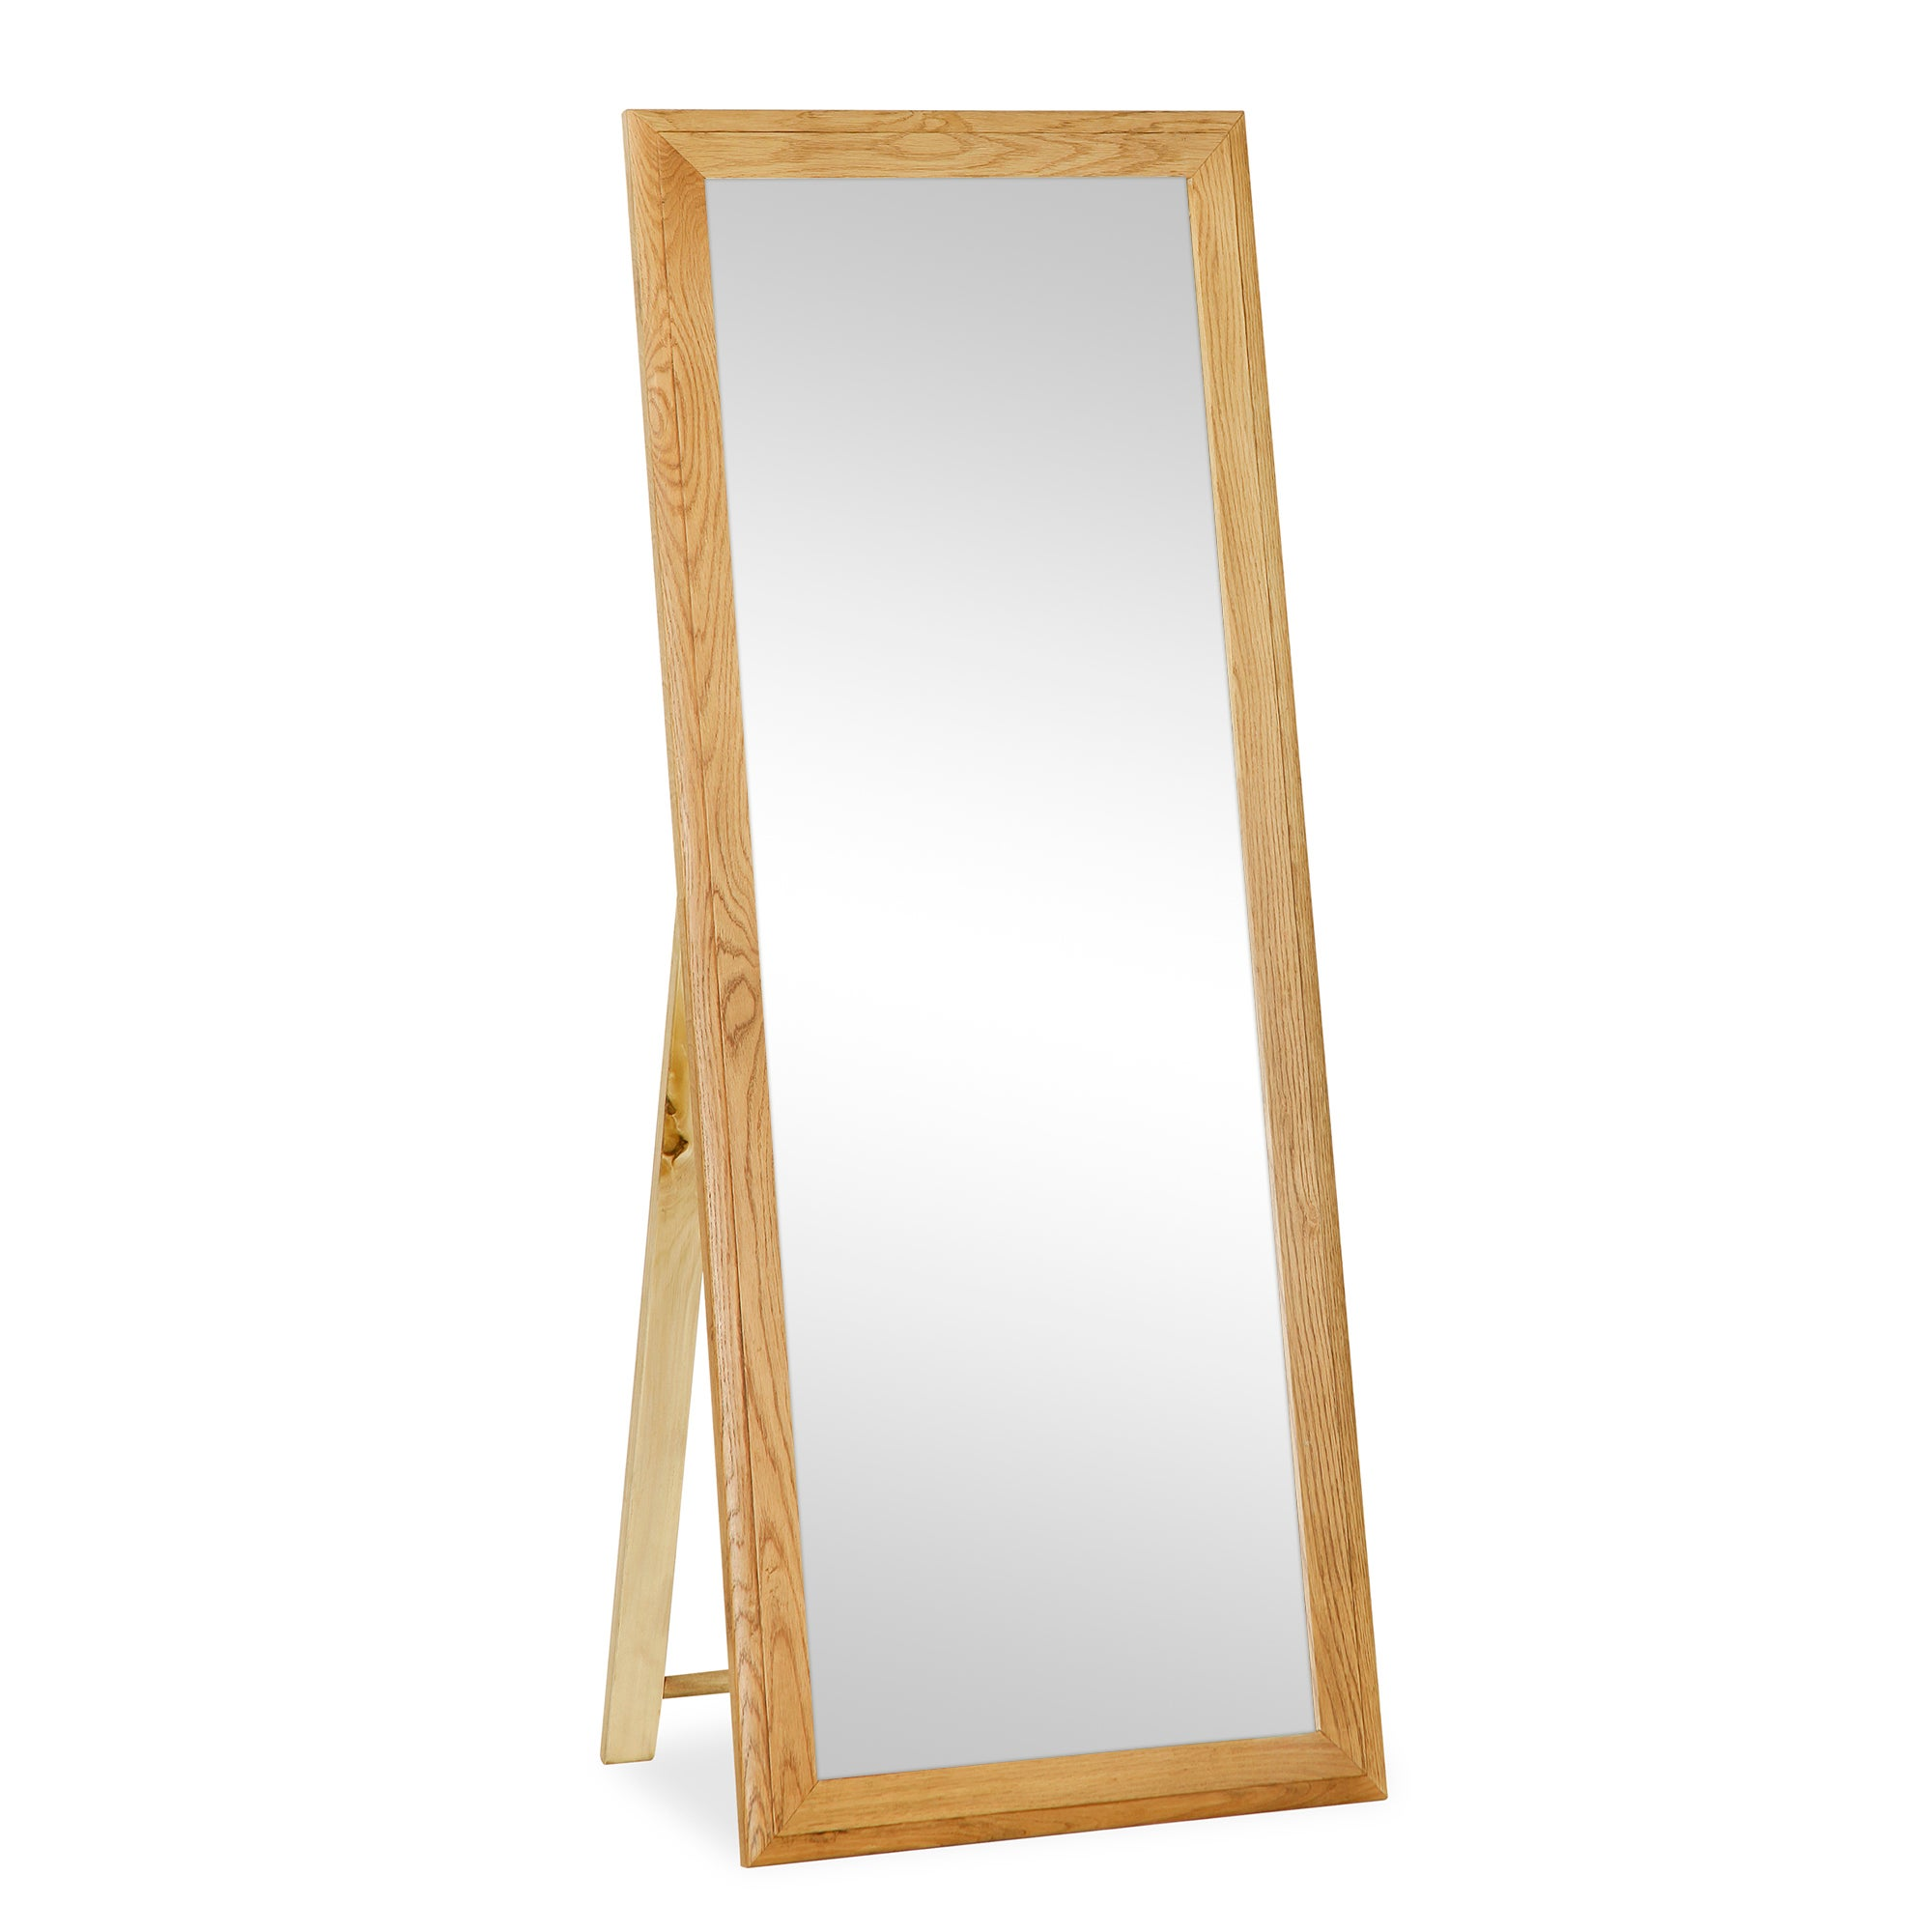 Buy Cheap Oak Cheval Mirror Compare Products Prices For